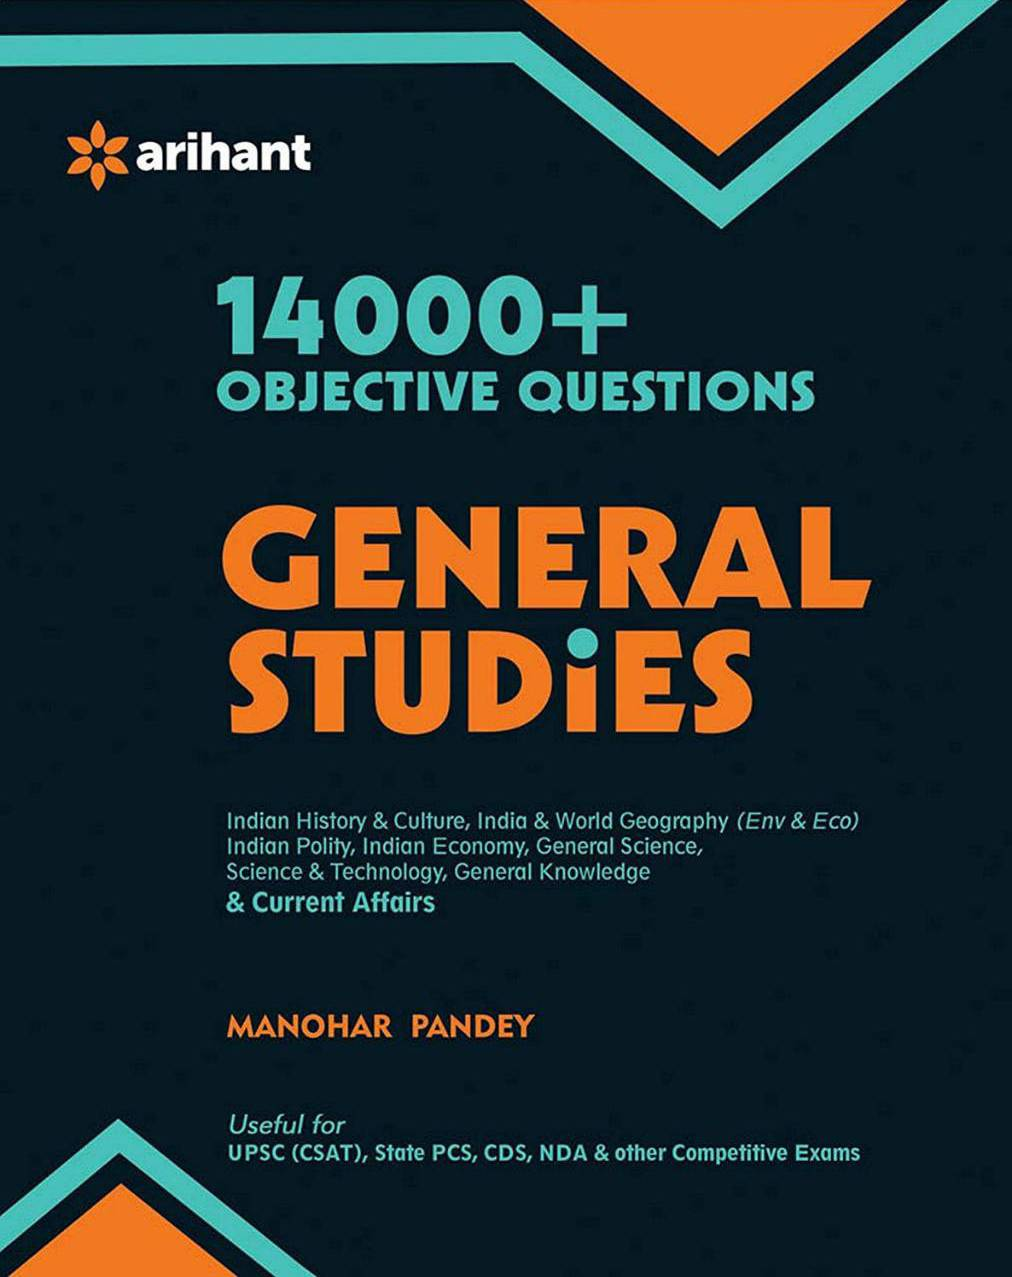 arihant csat paper 2 book pdf free download